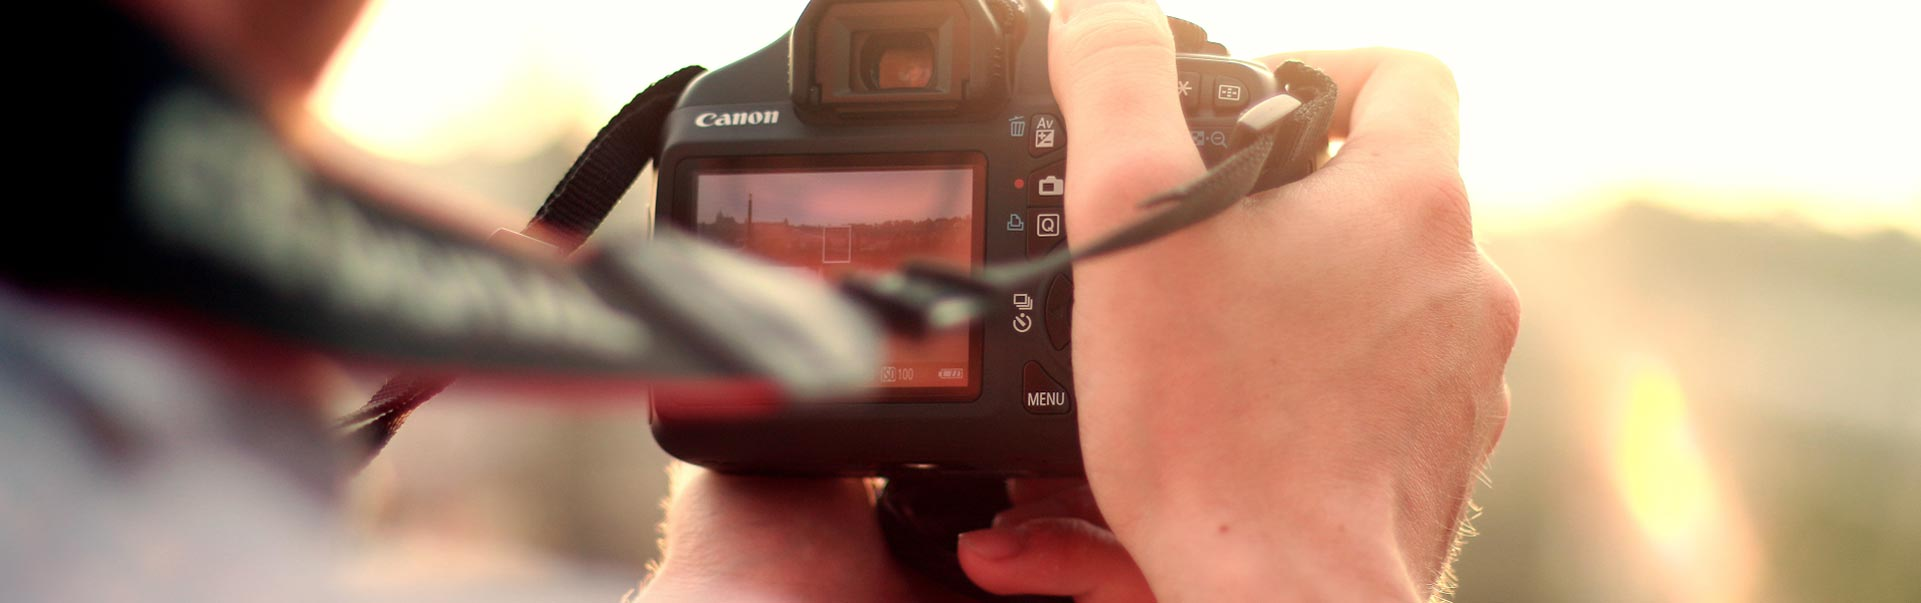 Cached How to get started with photography